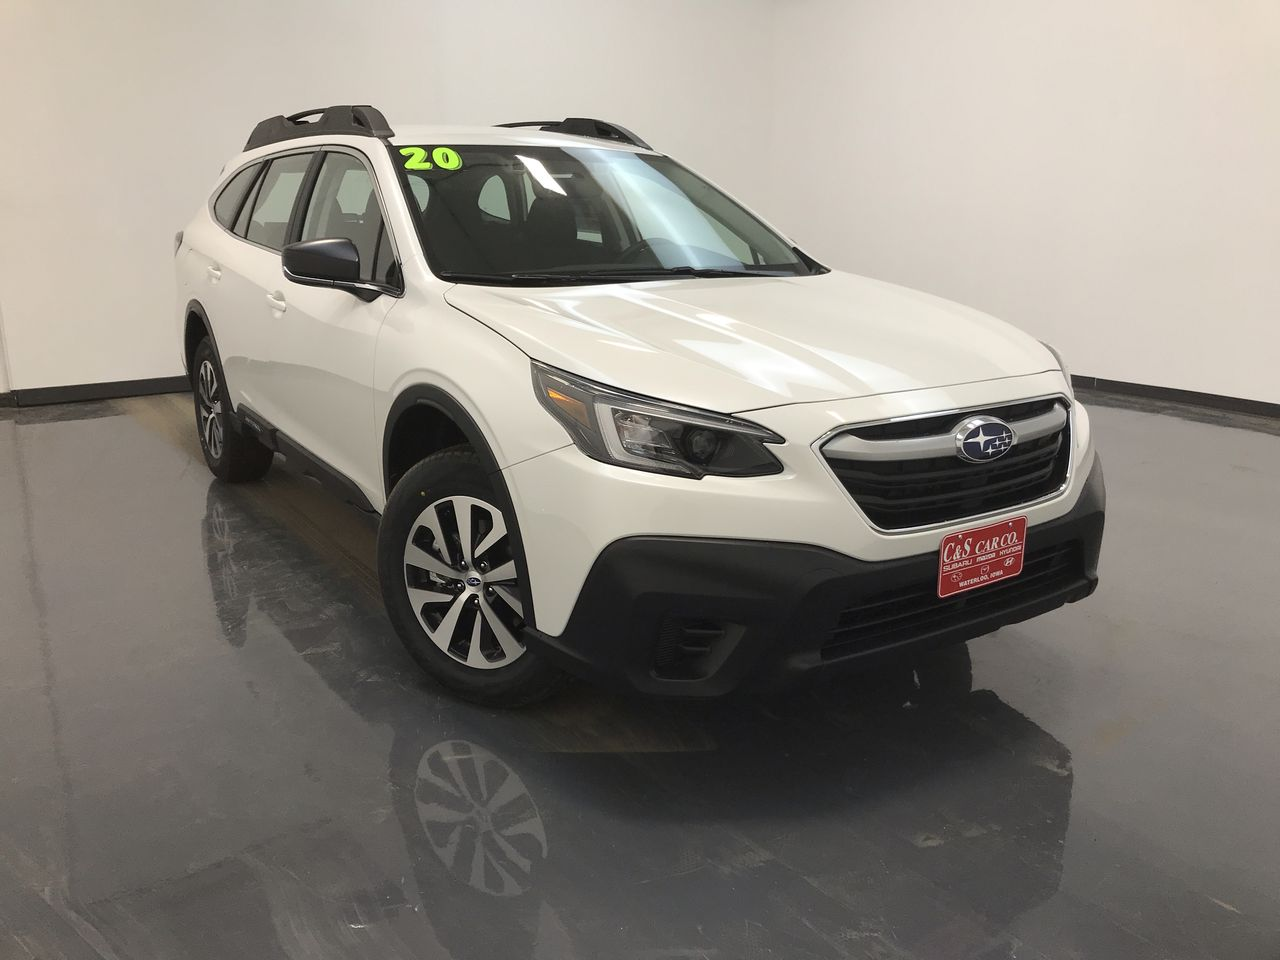 2020 subaru outback ldb w eyesight stock sc8626 waterloo ia 2020 subaru outback ldb w eyesight stock sc8626 waterloo ia